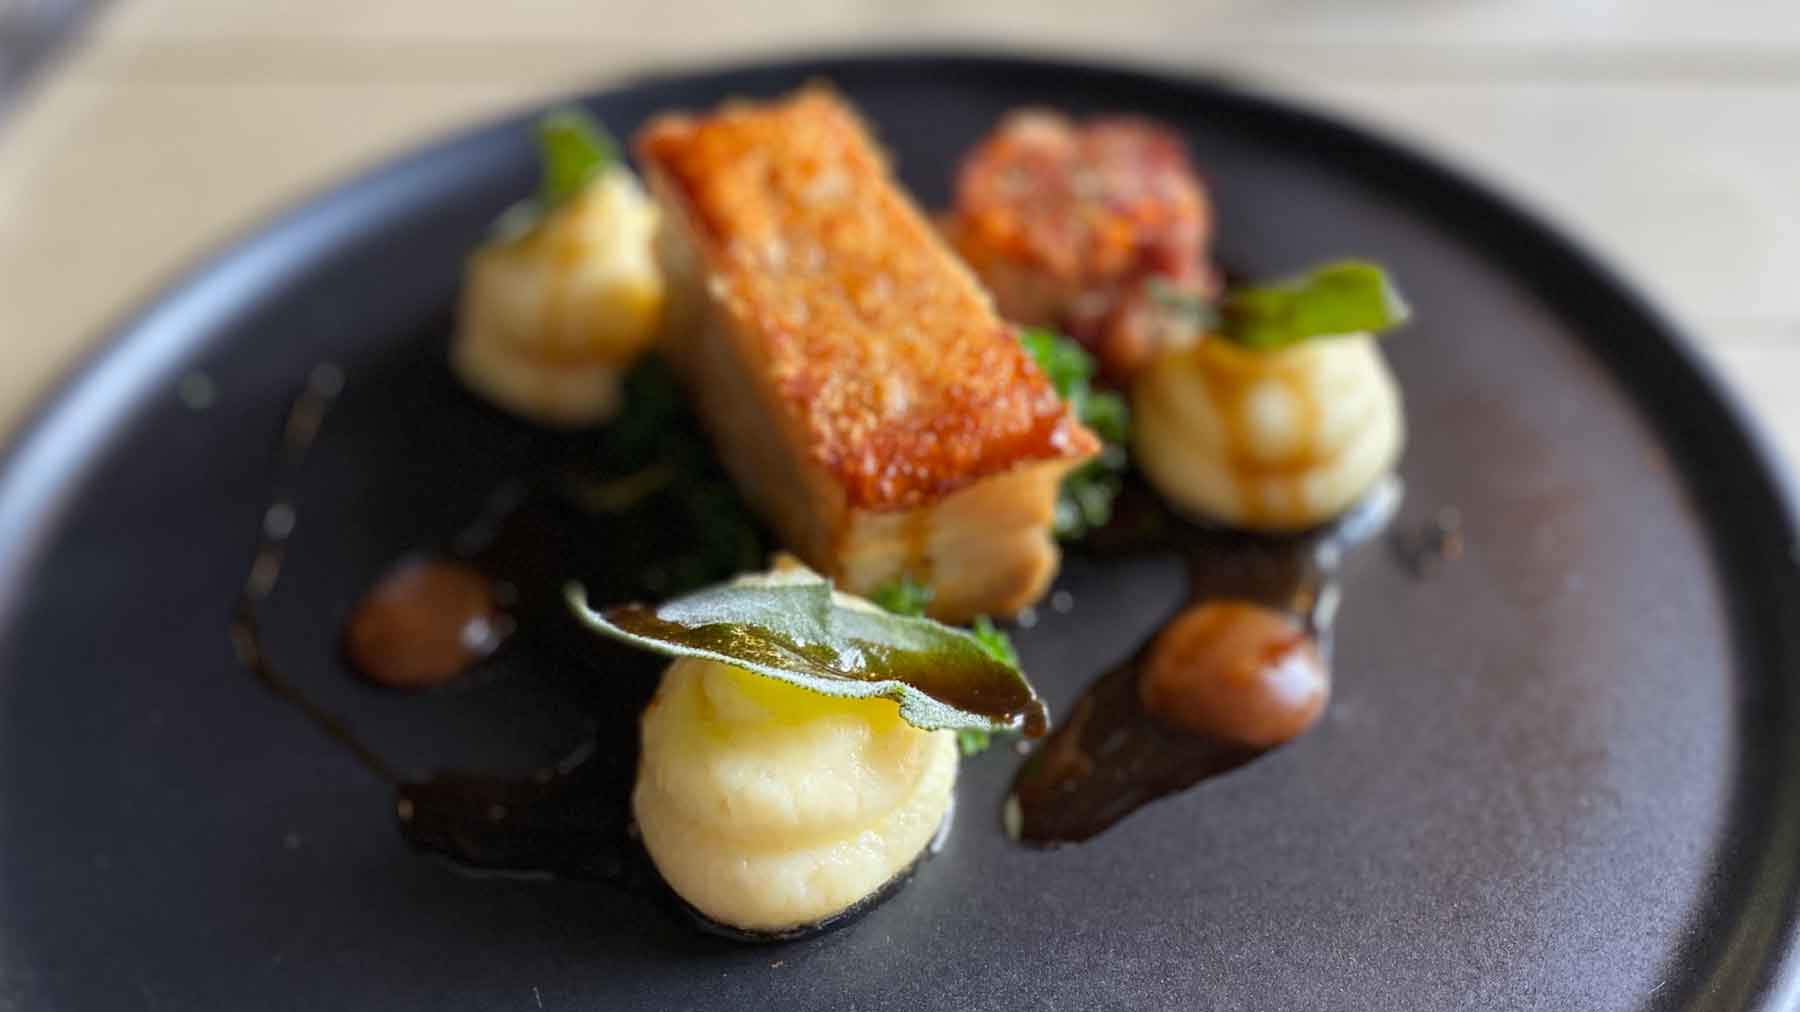 Beautifully prepared and presented pork belly dish at The George Alstonefield, Peak District